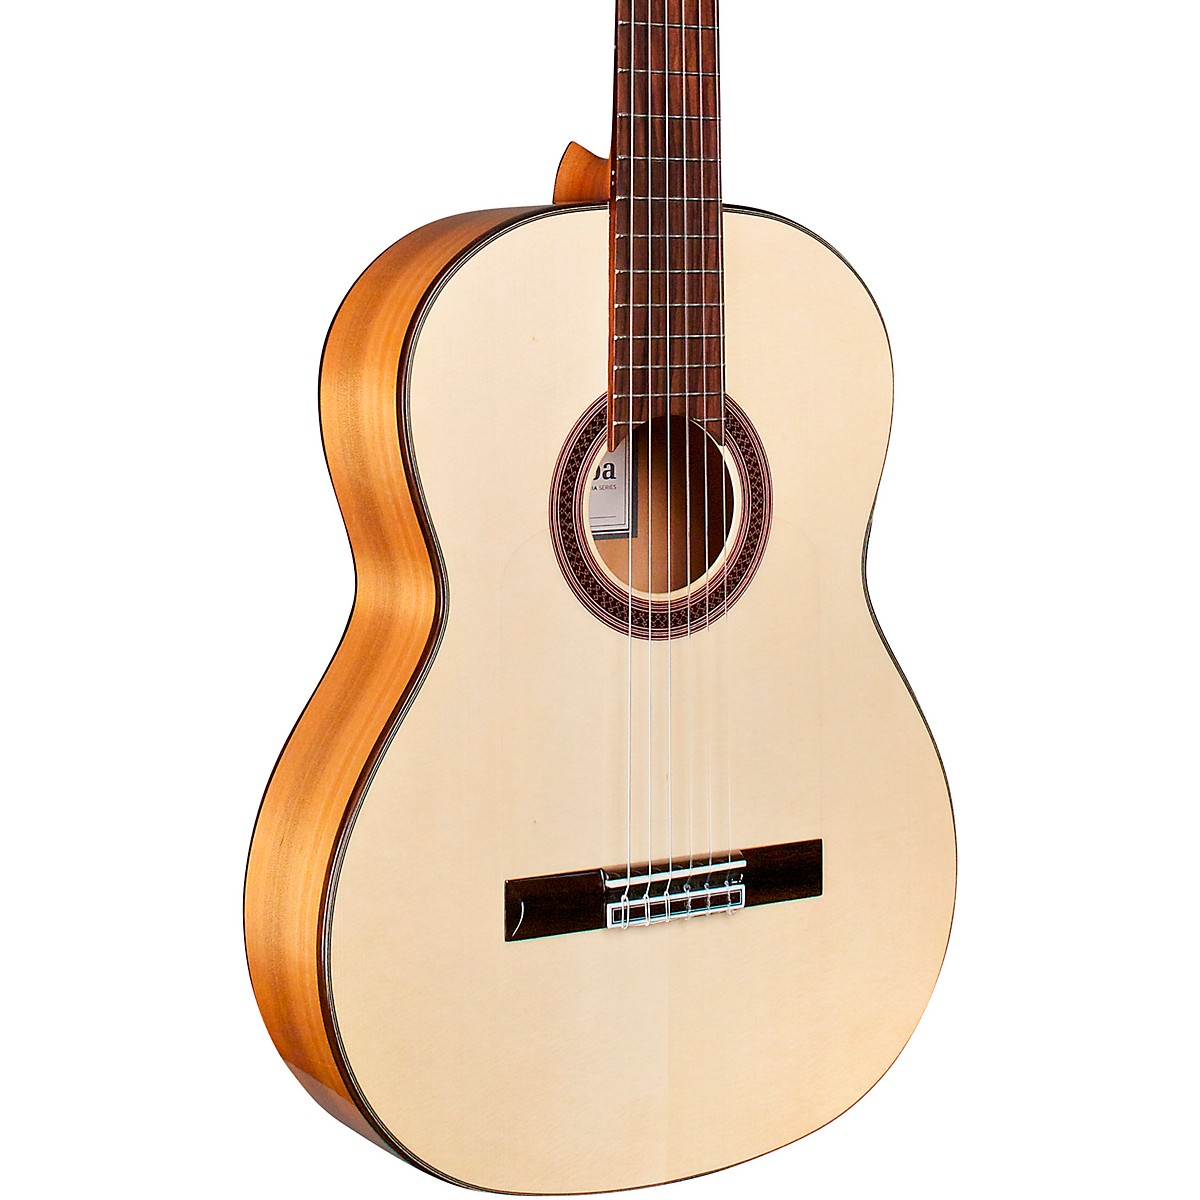 Cordoba F7 Nylon-String Flamenco Acoustic Guitar